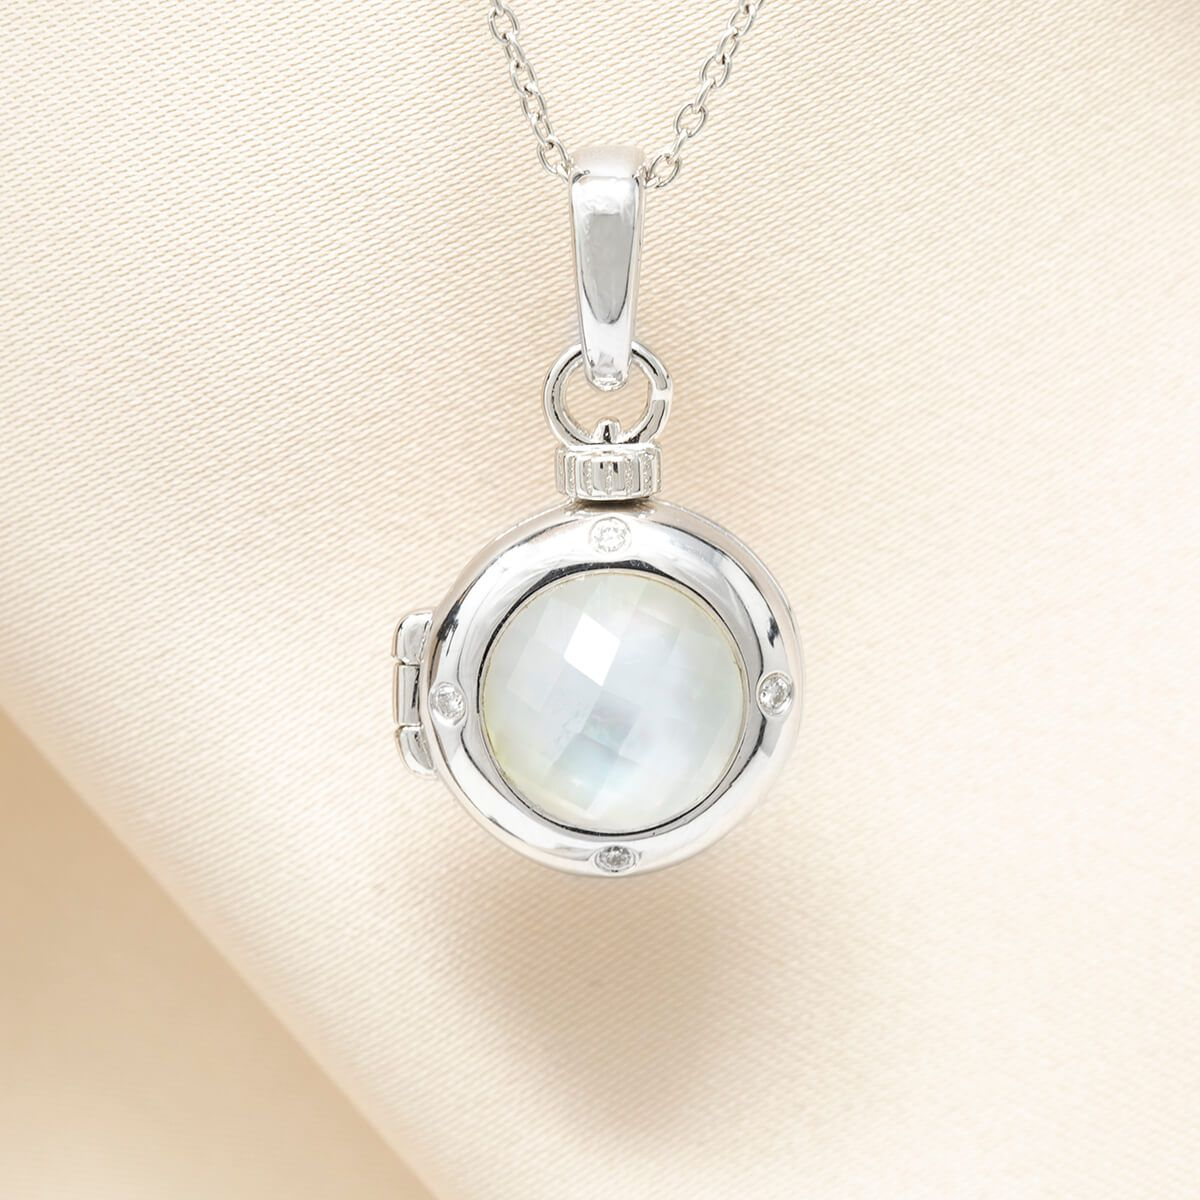 Shelly Petite Locket Necklace